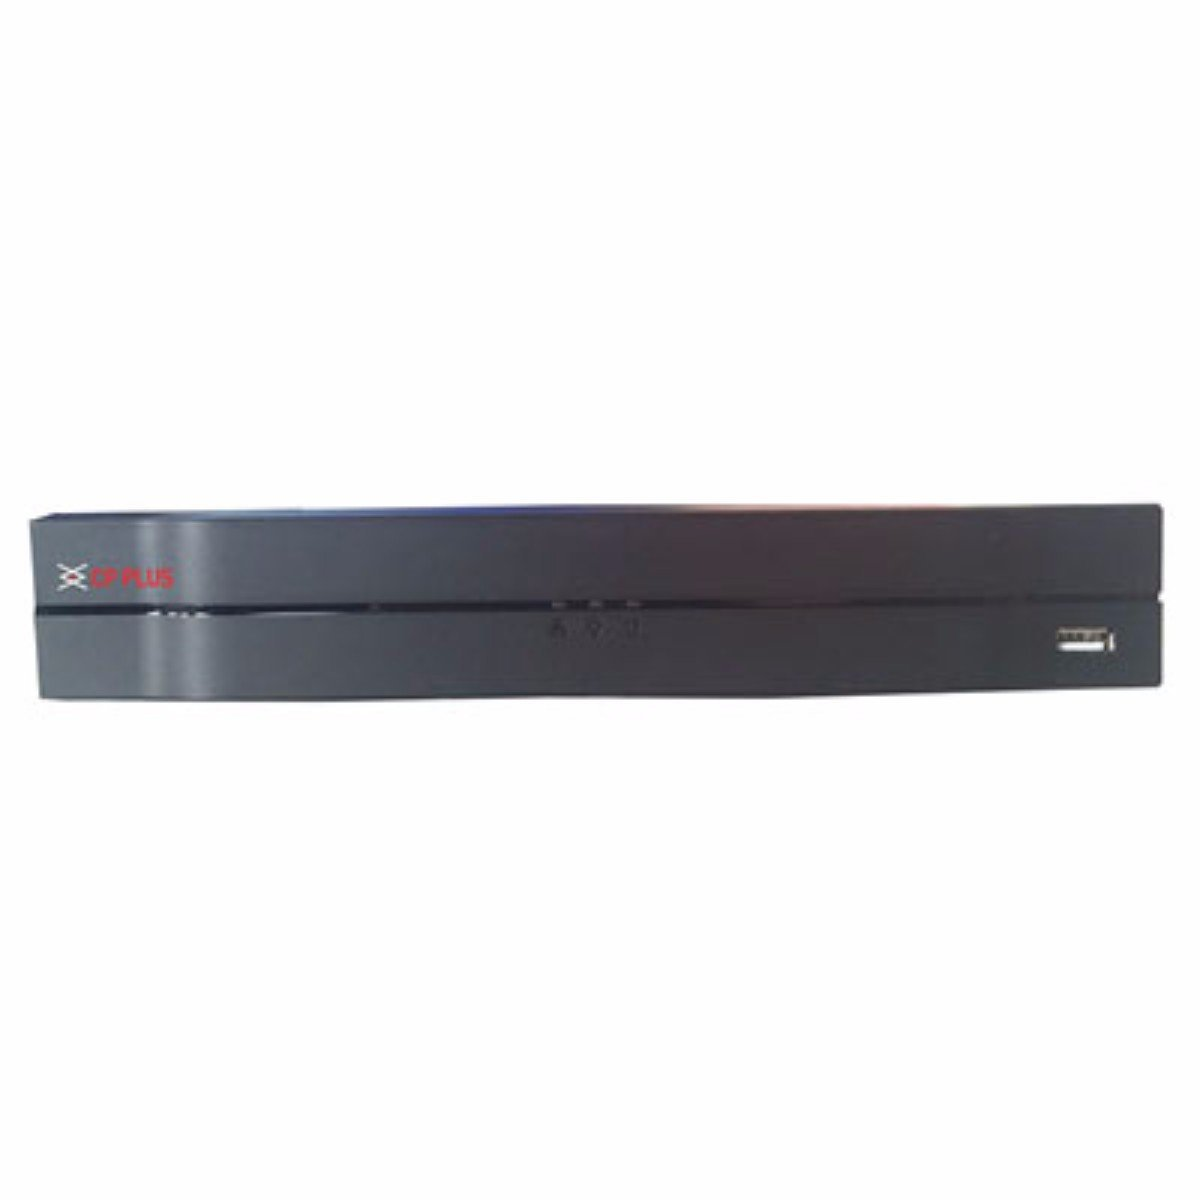 CP Plus CP-UVR-1601K1-S (without Harddisk) 16 Ch. 1 SATA DVR (Black)